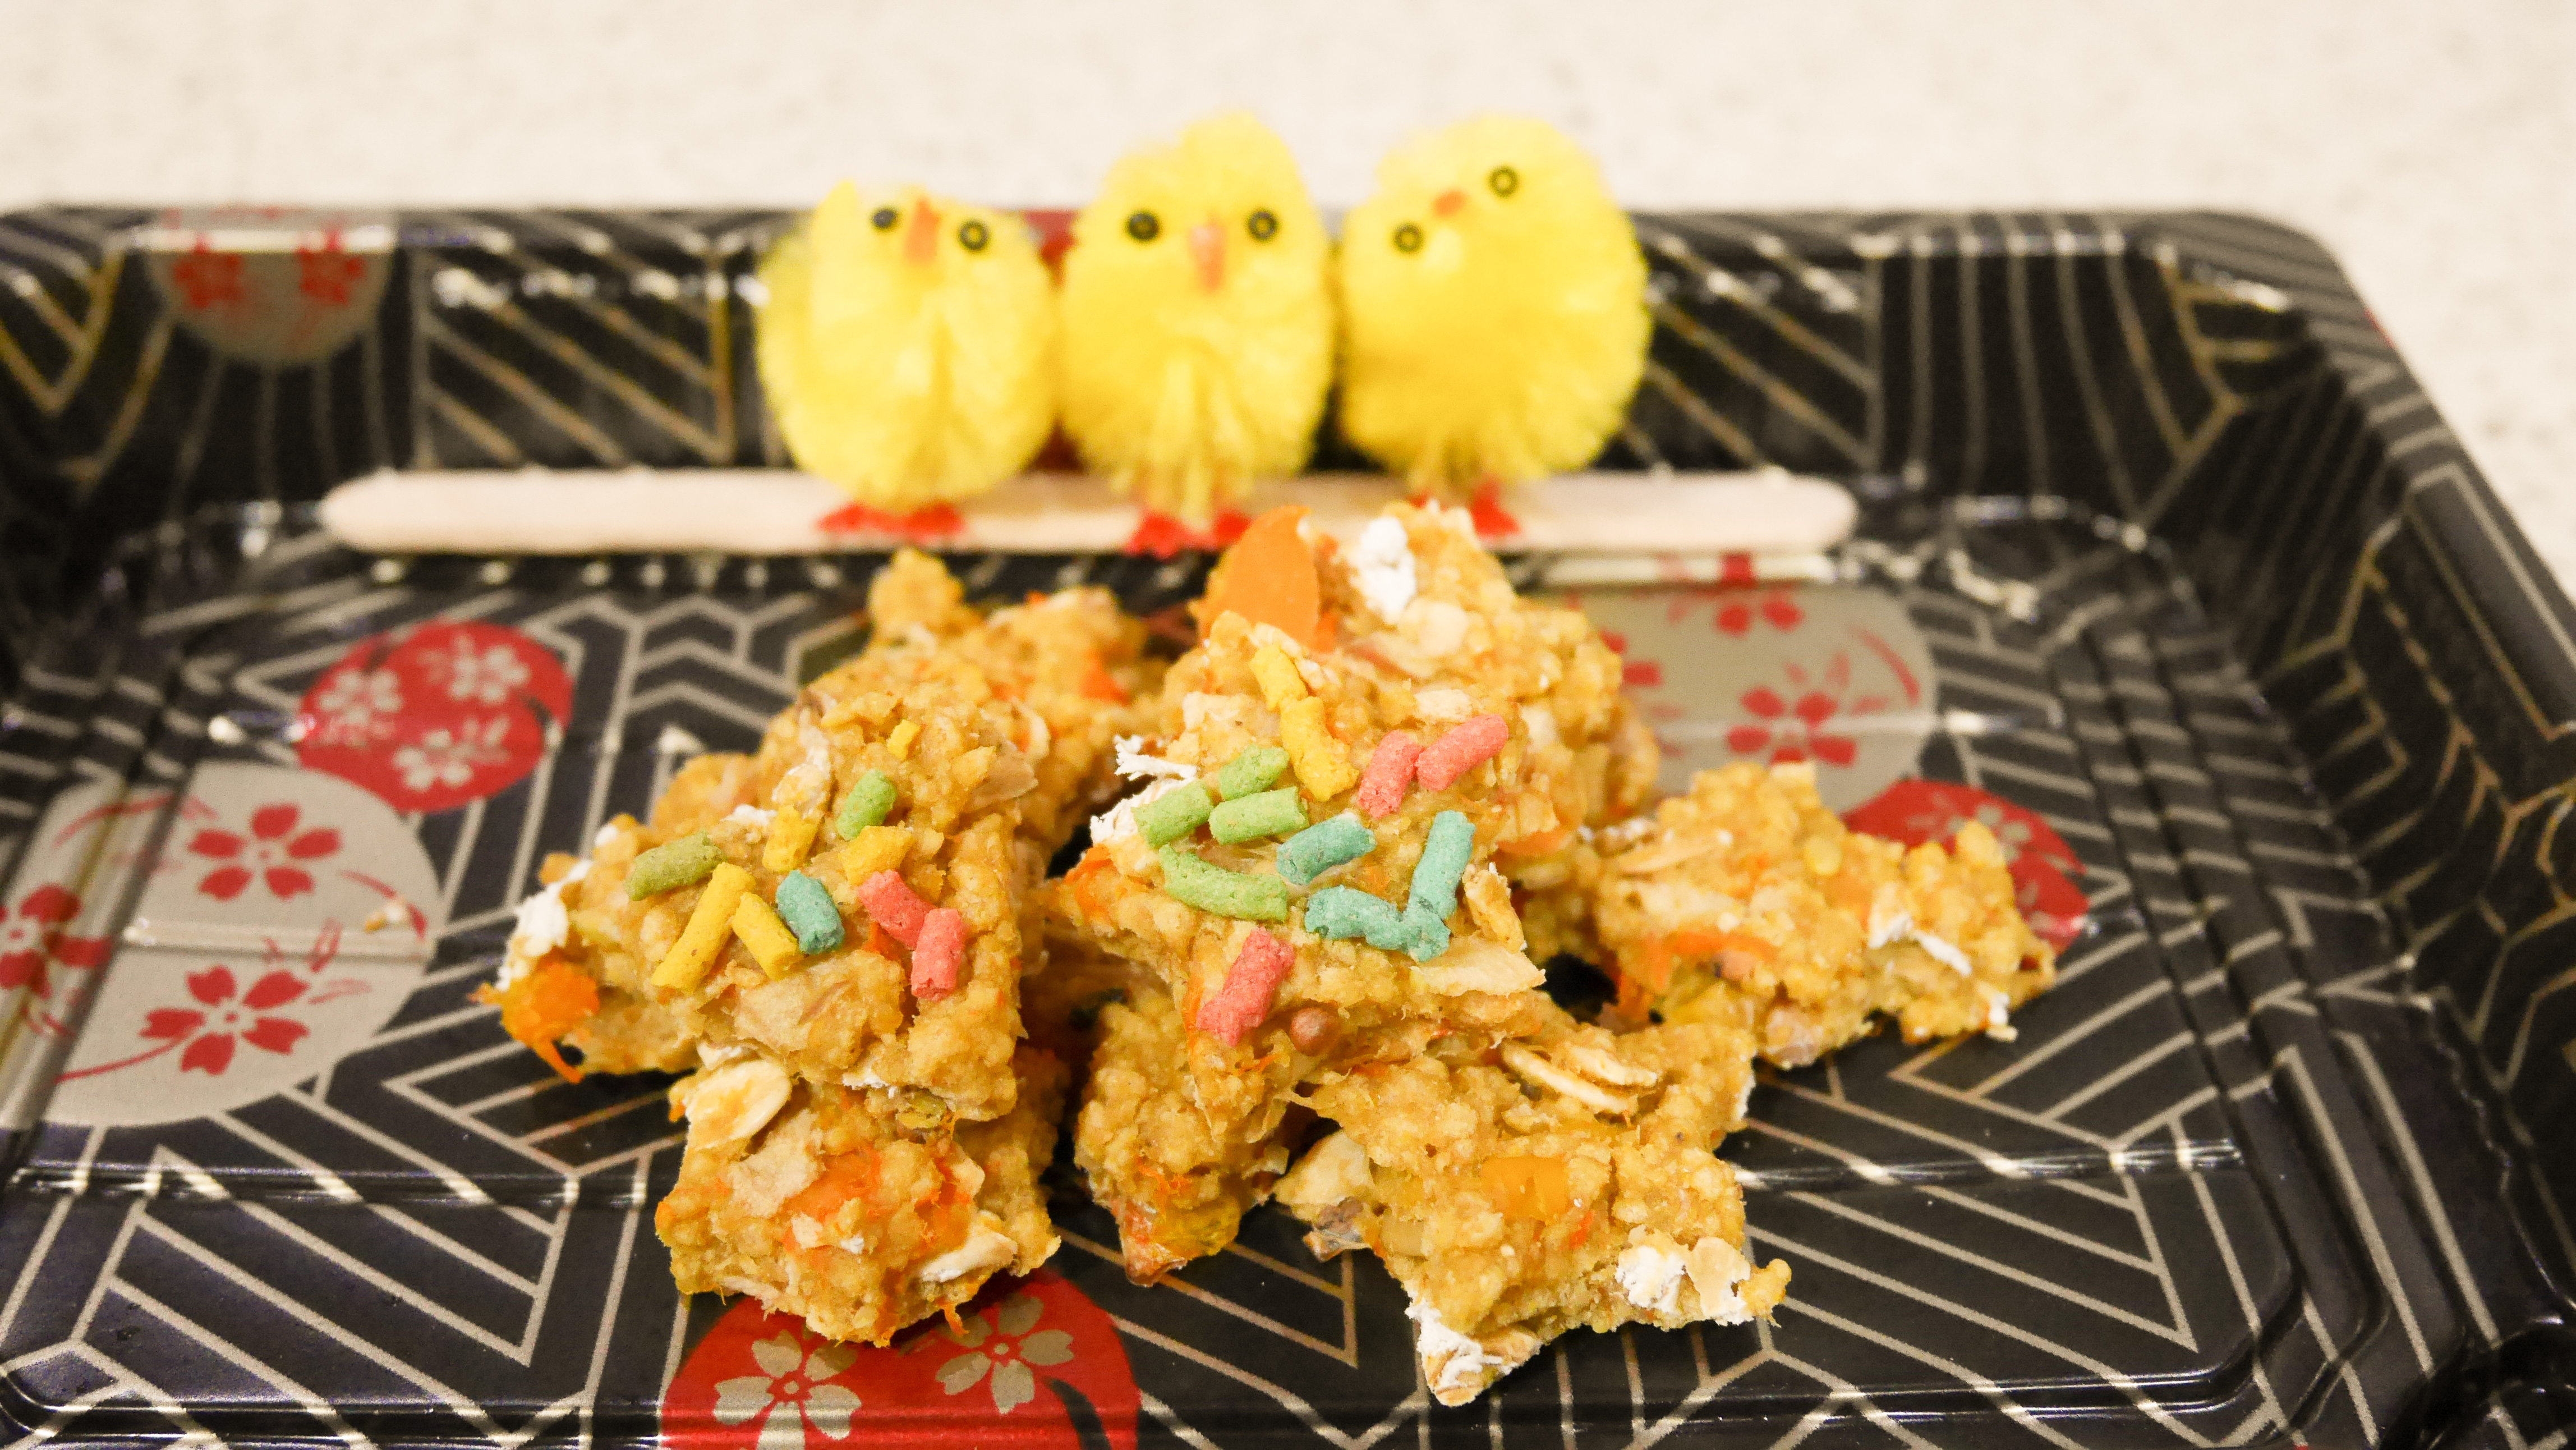 Healthy parrot cookies and toy baby chicken for decoration